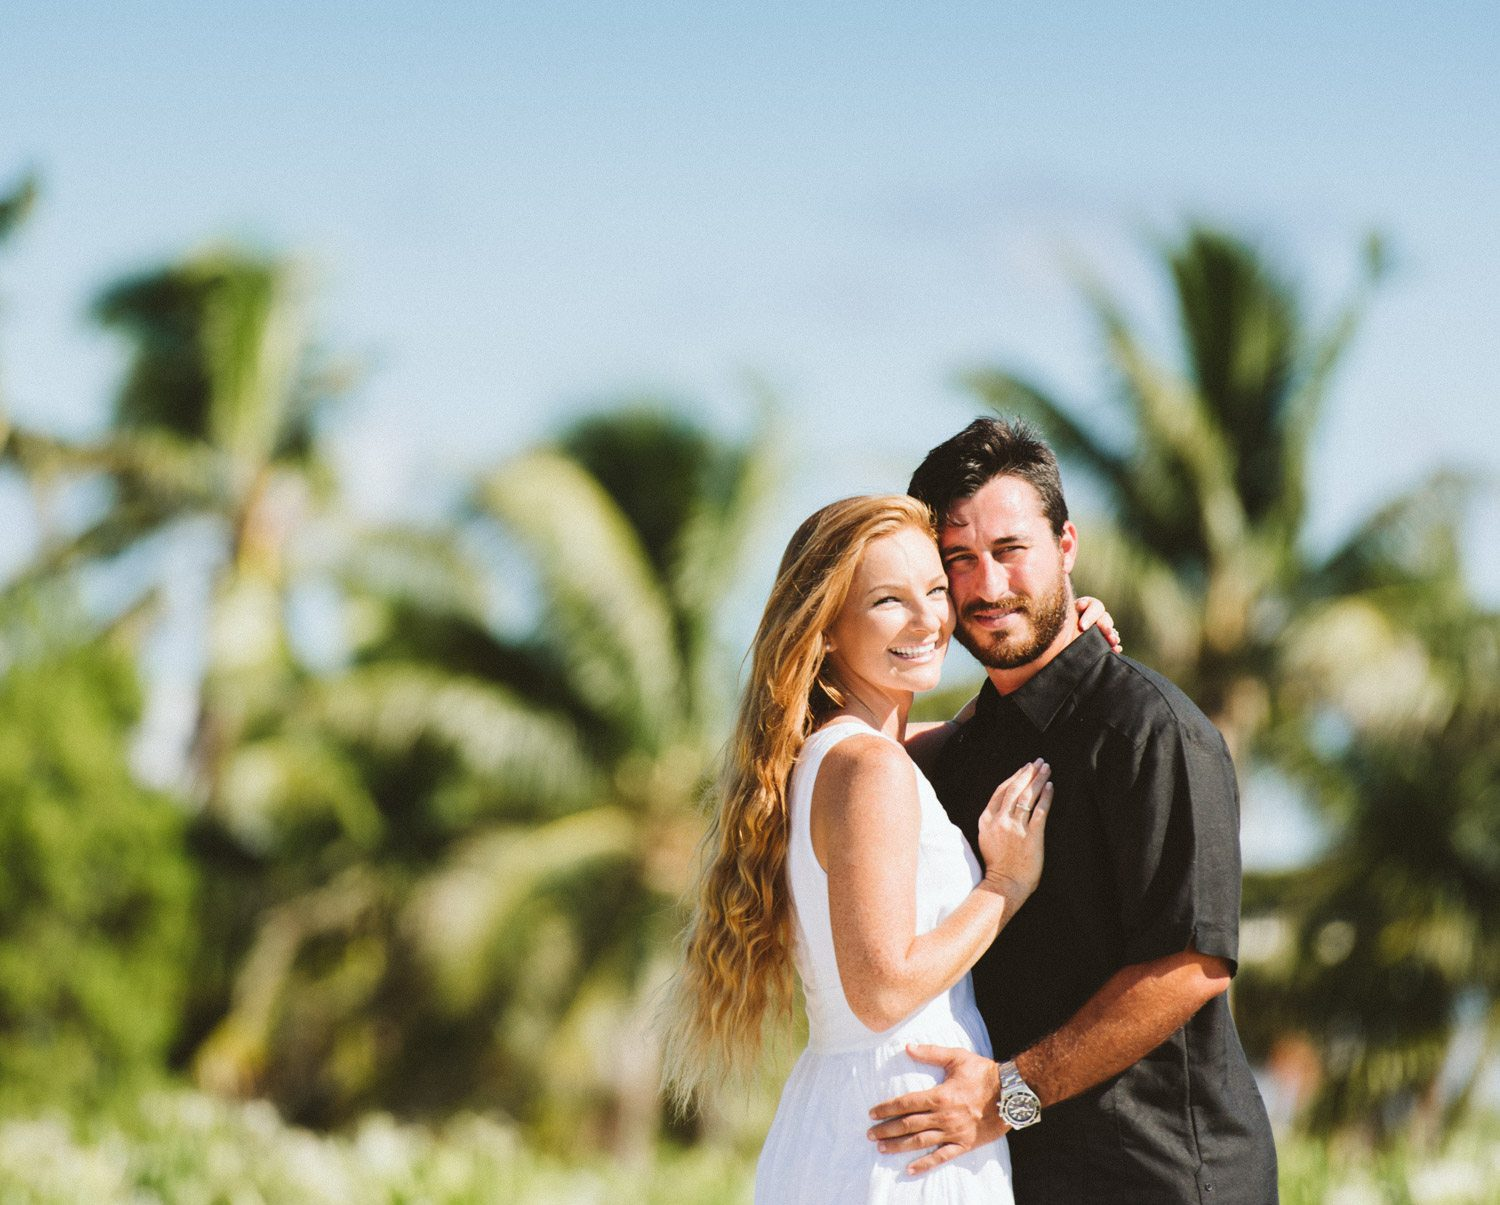 Katherine Oscar Engagement Photos Dry Tortugas 8 - Island Adventure Engagement Session - Dry Tortugas National Park and Fort Jefferson